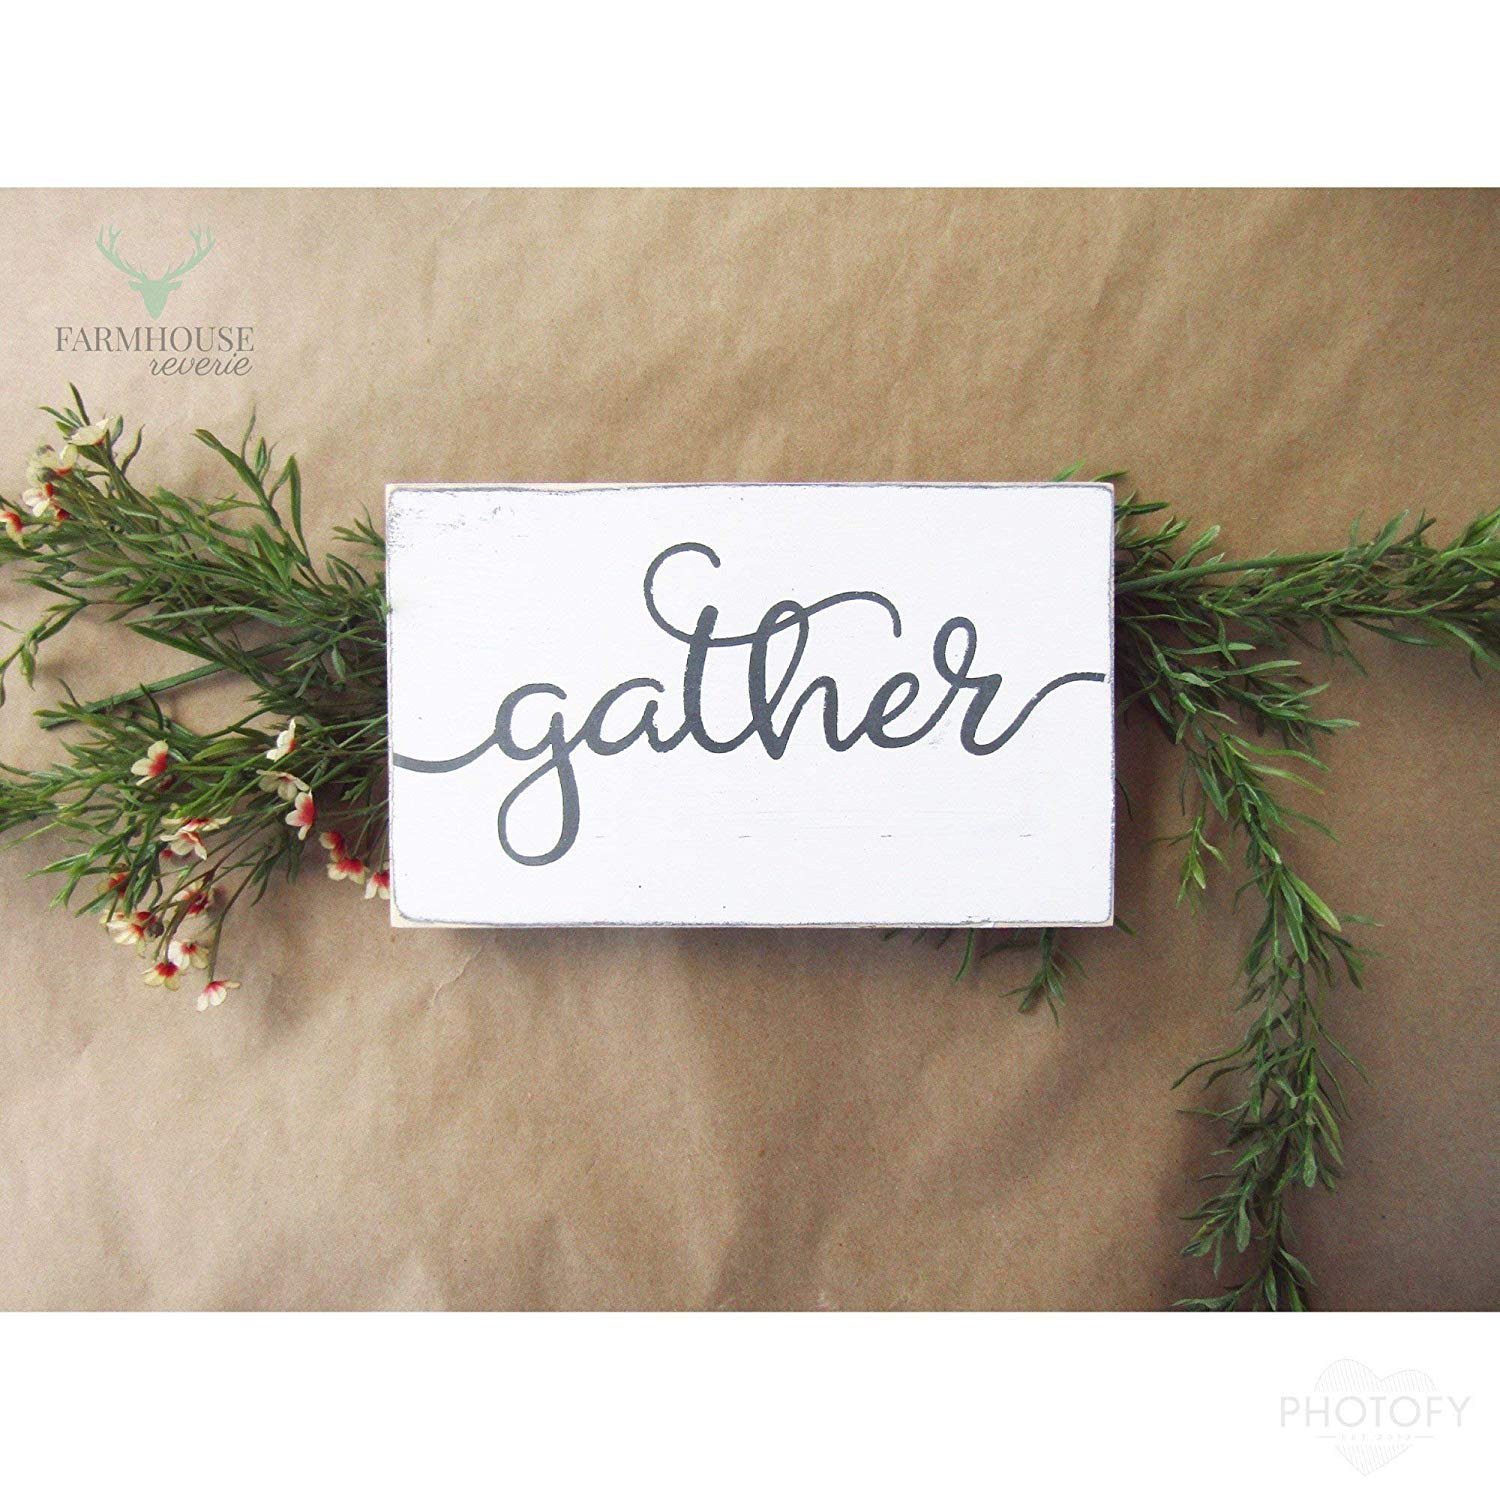 Rustic Gather Sign (Small Rustic Wood Sign, Farmhouse Sign, Shabby Chic Sign, French Country Signs, Farmhouse Home Decor, Rustic Home Decor, Primitive Signs, Primitive Decor, Shabby Chic Decor)